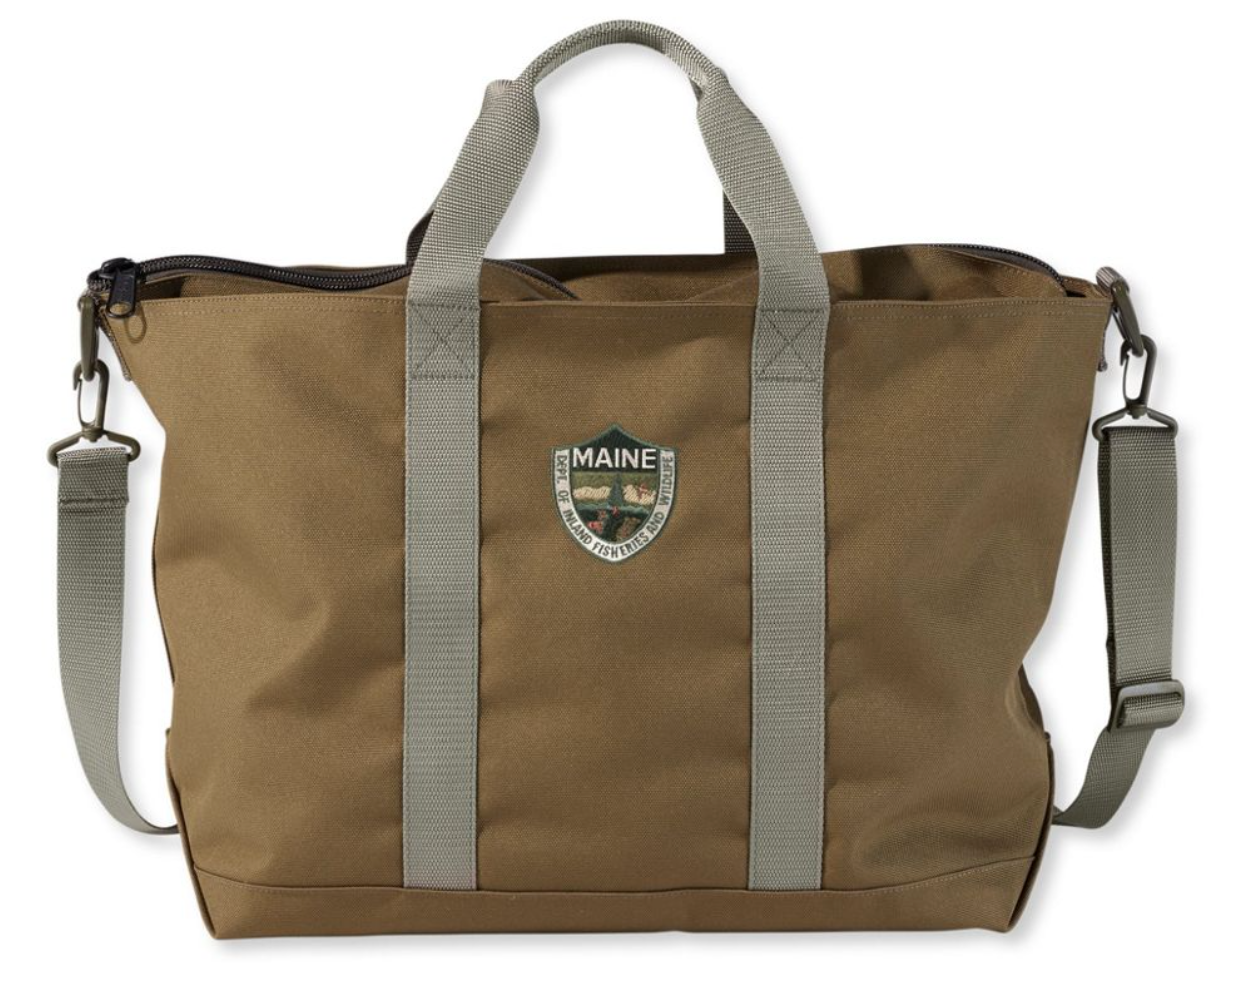 Maine Warden's Tote Bag by L.L.Bean, gift guide